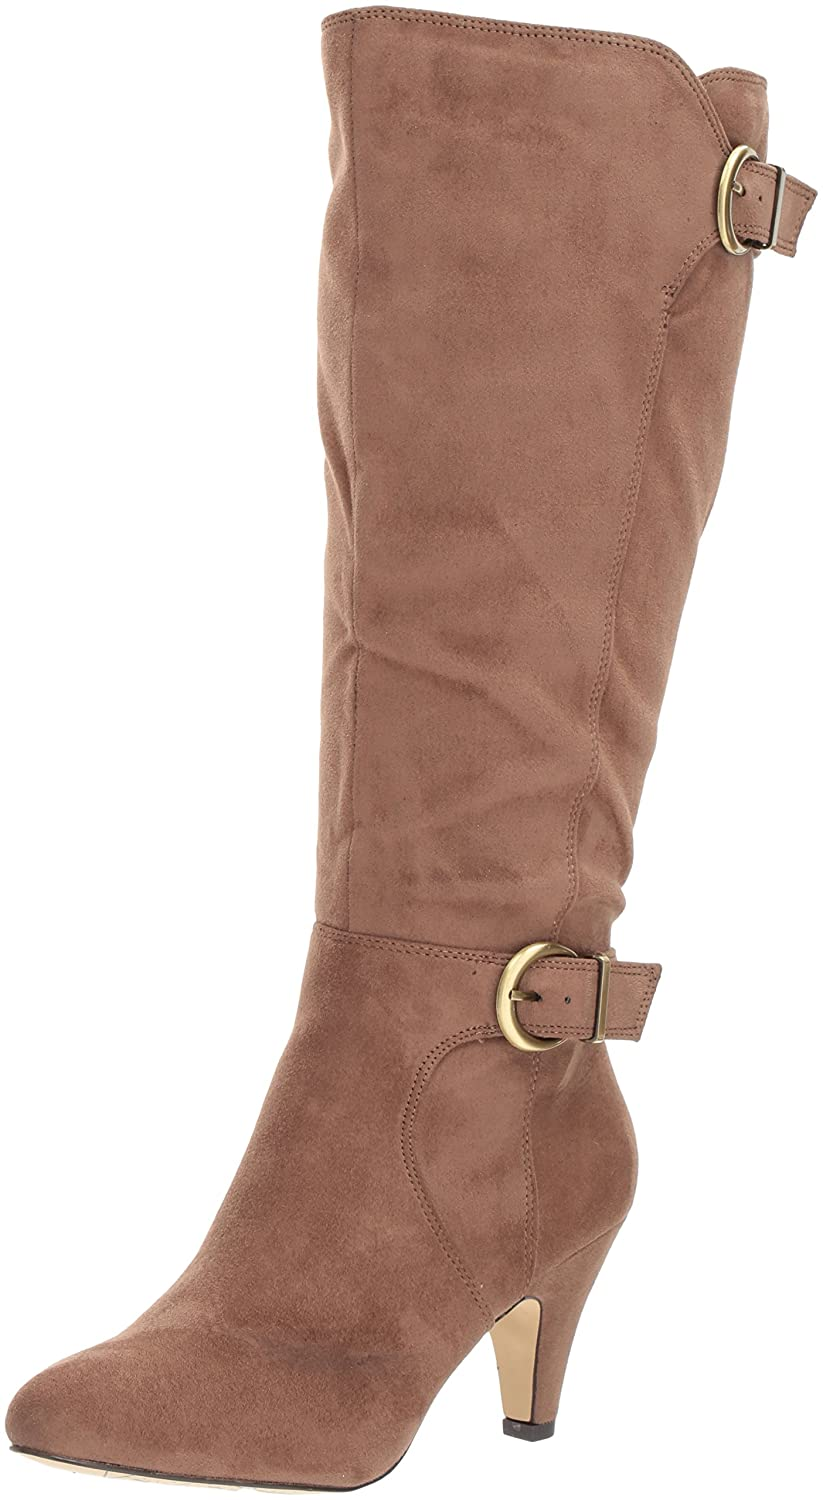 Bella Vita Women's Toni Ii Plus Harness Boot B073NQ1D1D 11 W US|Fawn Super Suede